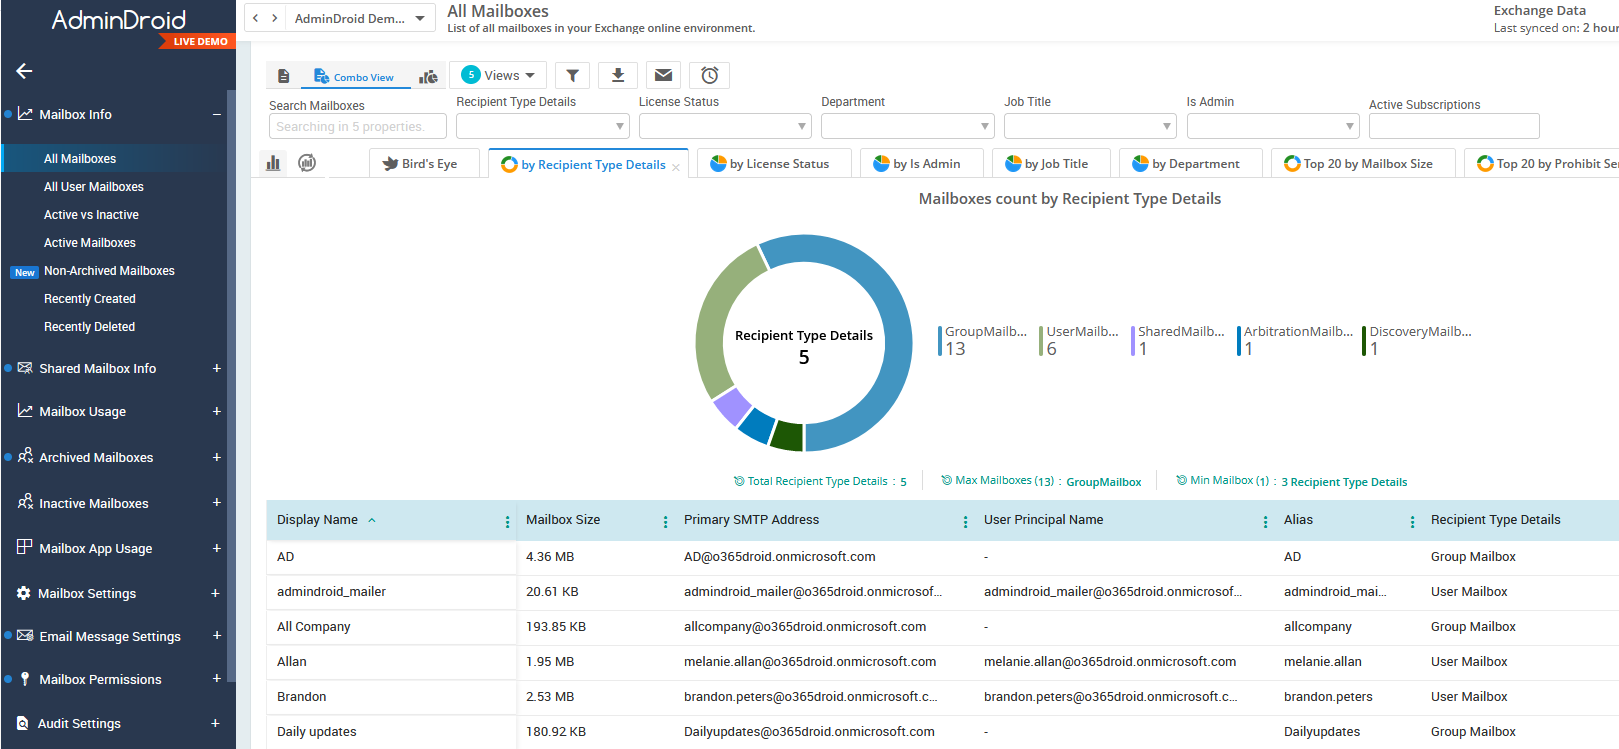 AdminDroid Office 365 reporting tool AI Graph